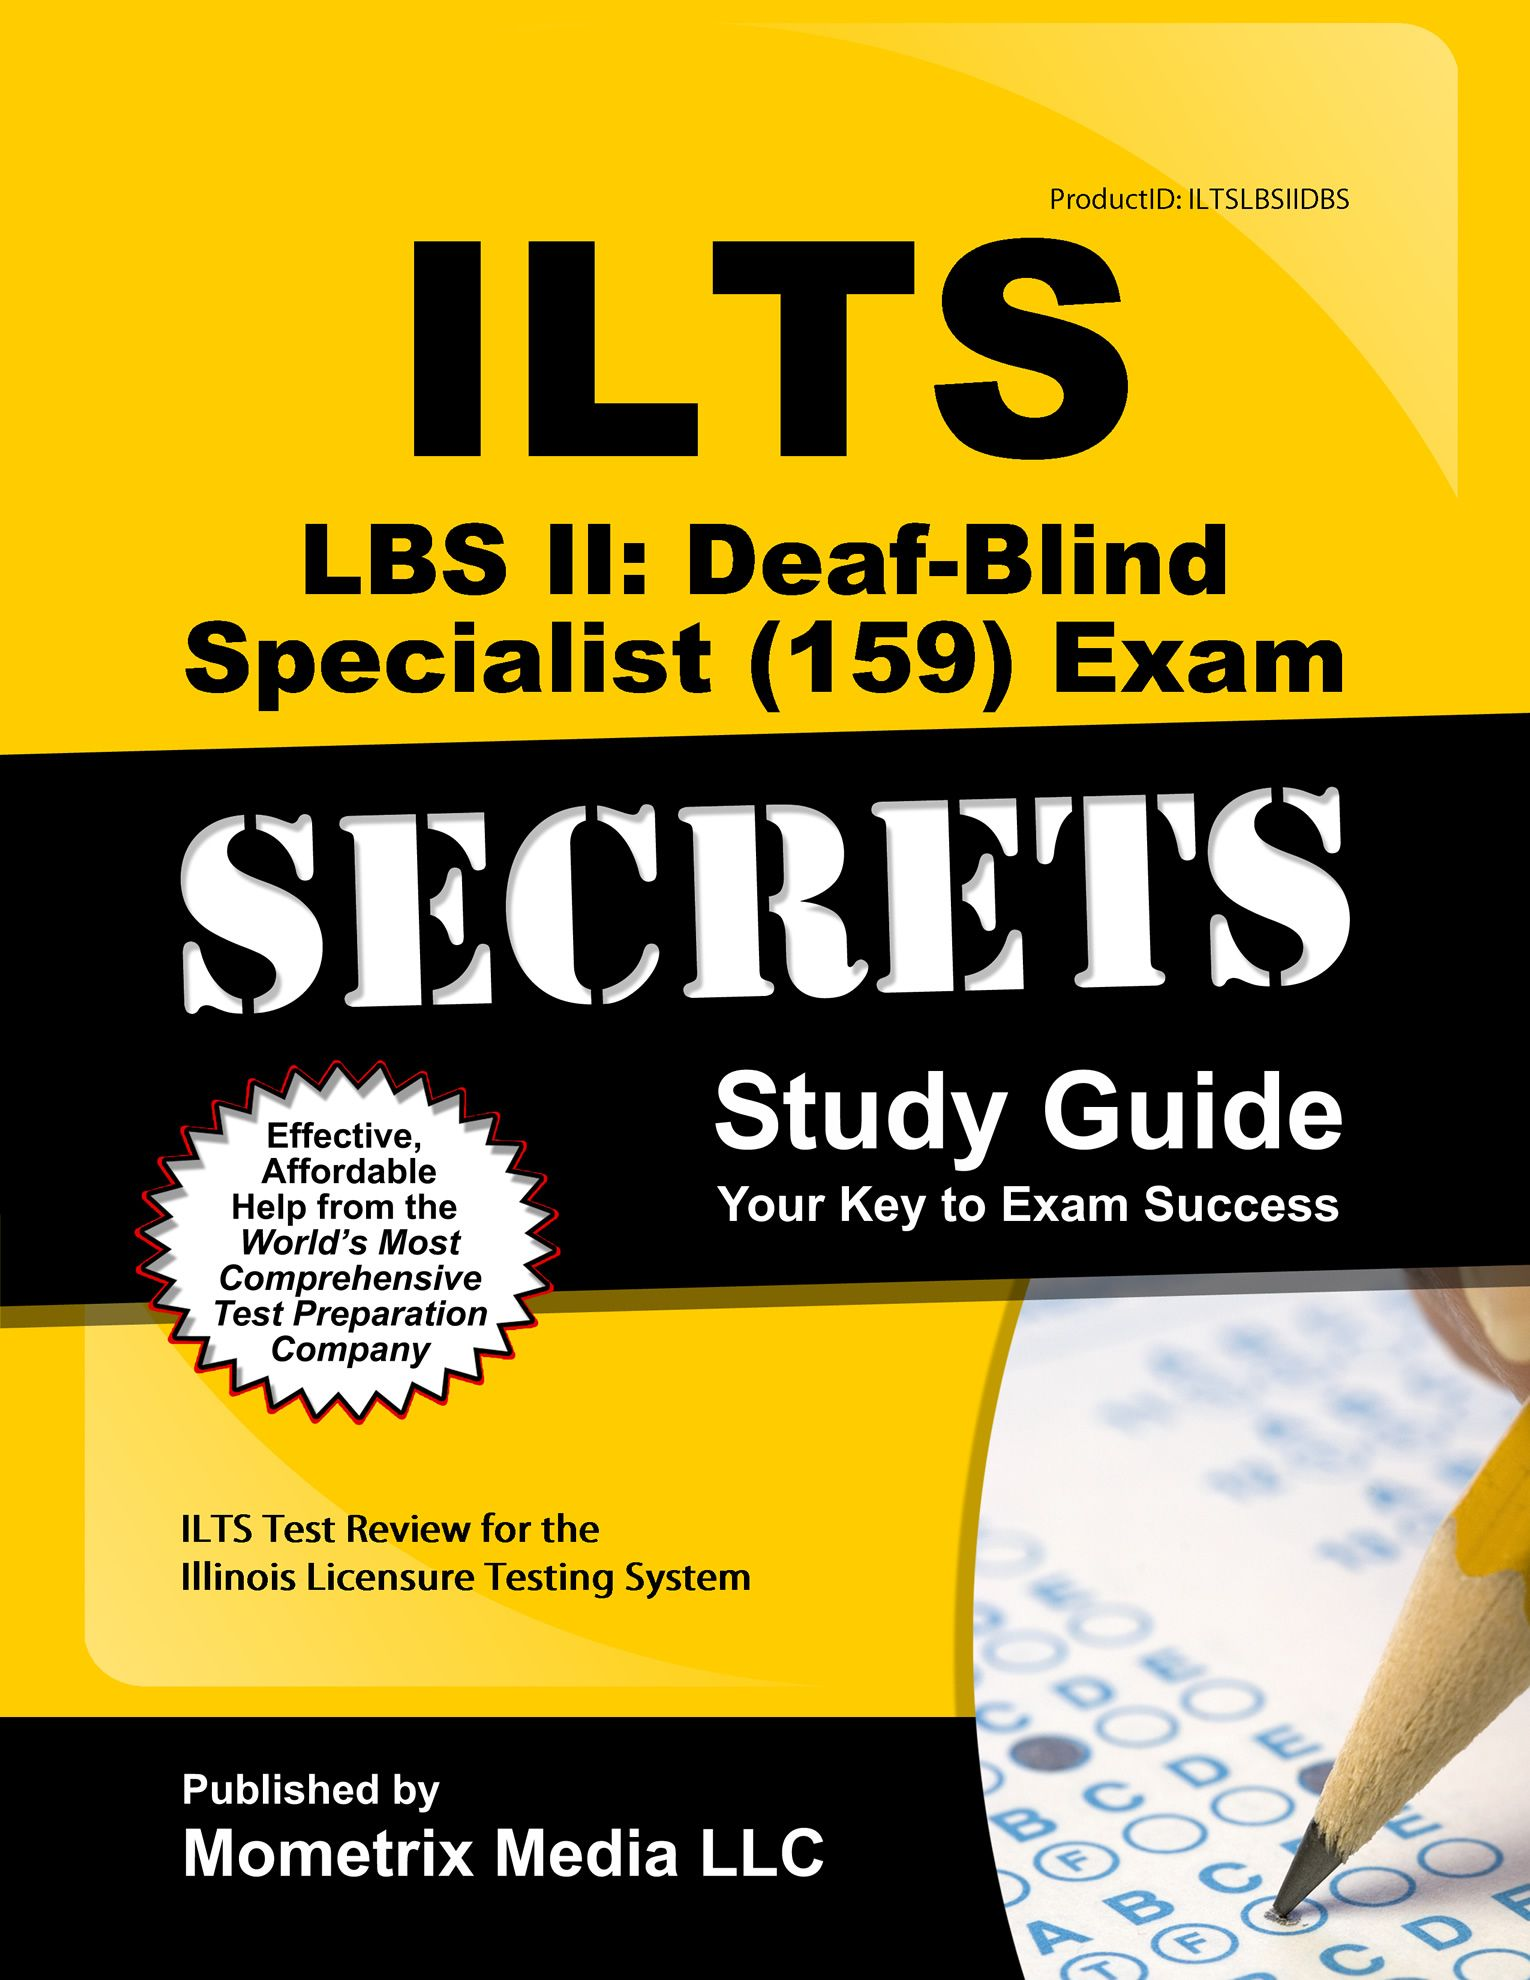 Ilts Lbs Ii Deaf Blind Specialist 159 Exam Study Guide Http Mo Media Com Ilts Ilts Ged Study Guide Ged Study Life And Health Insurance